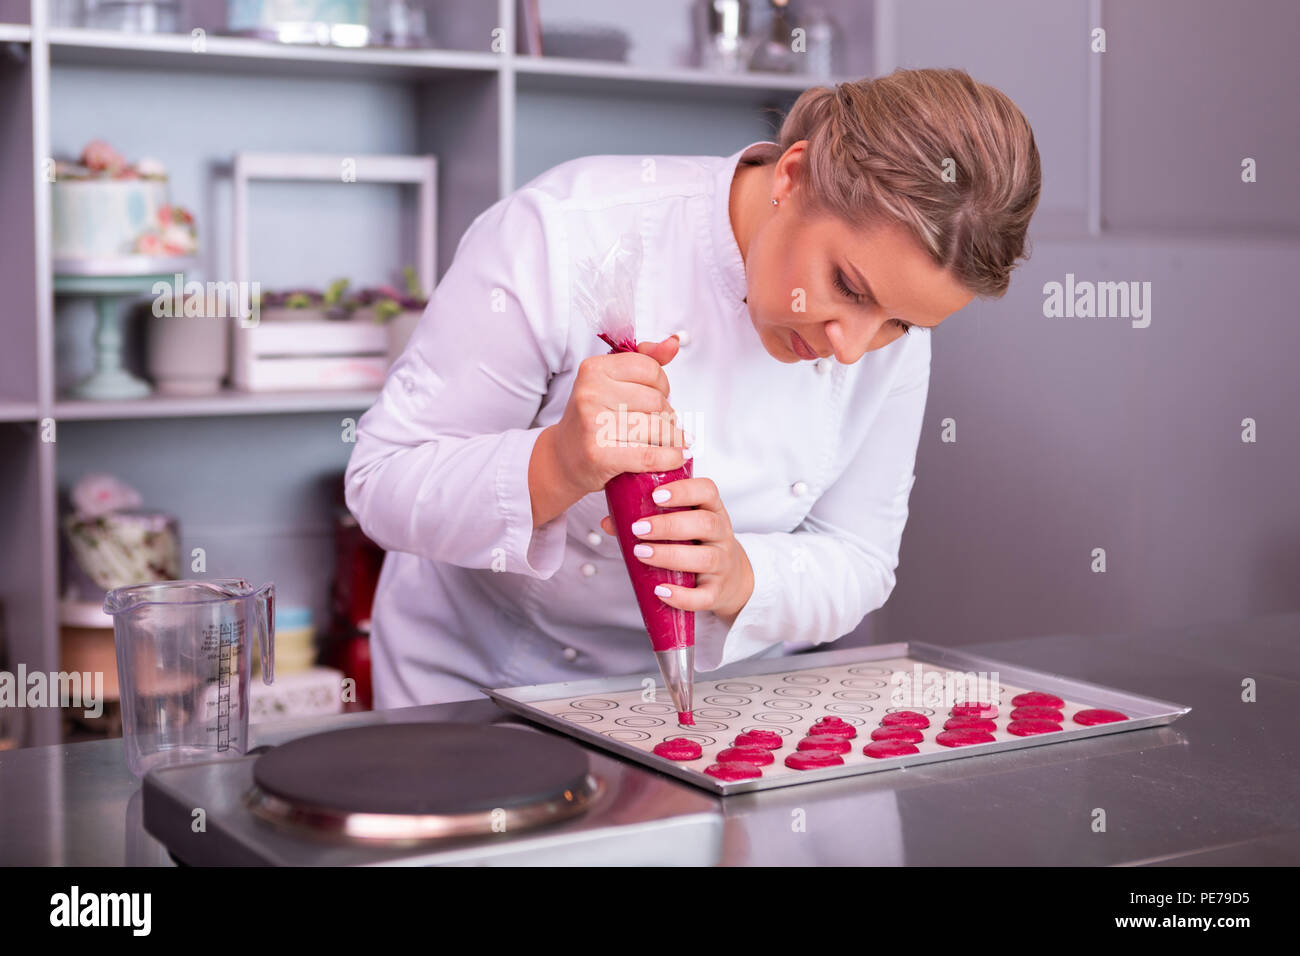 Blonde-haired baker with nice hairstyle feeling very busy Stock Photo